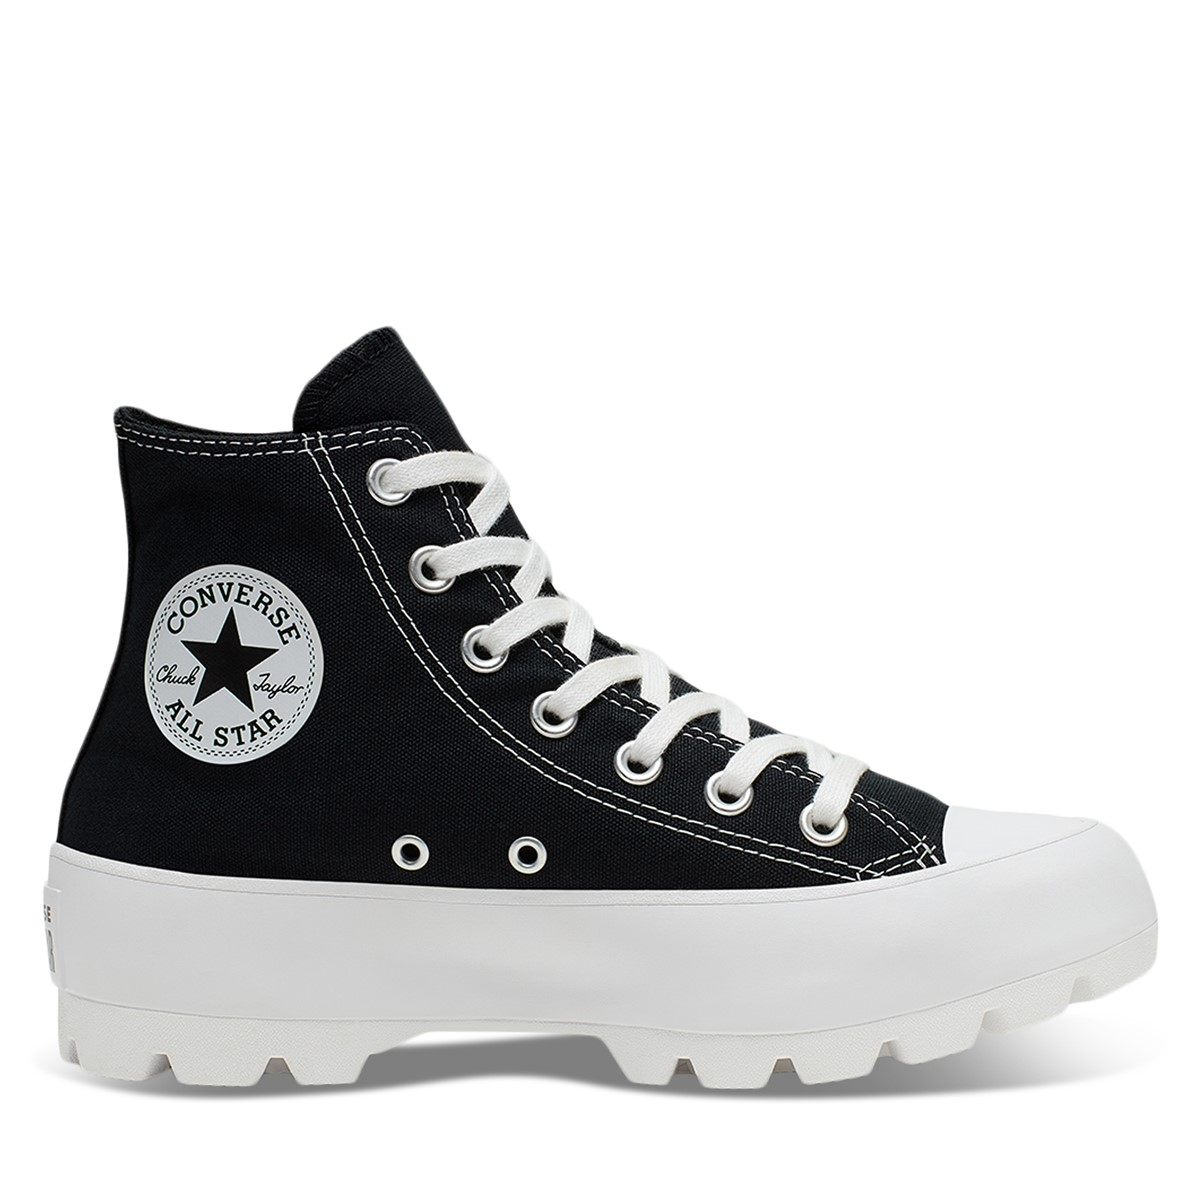 Women's Chuck Taylor All-Star Lugged Sneakers in Black/White